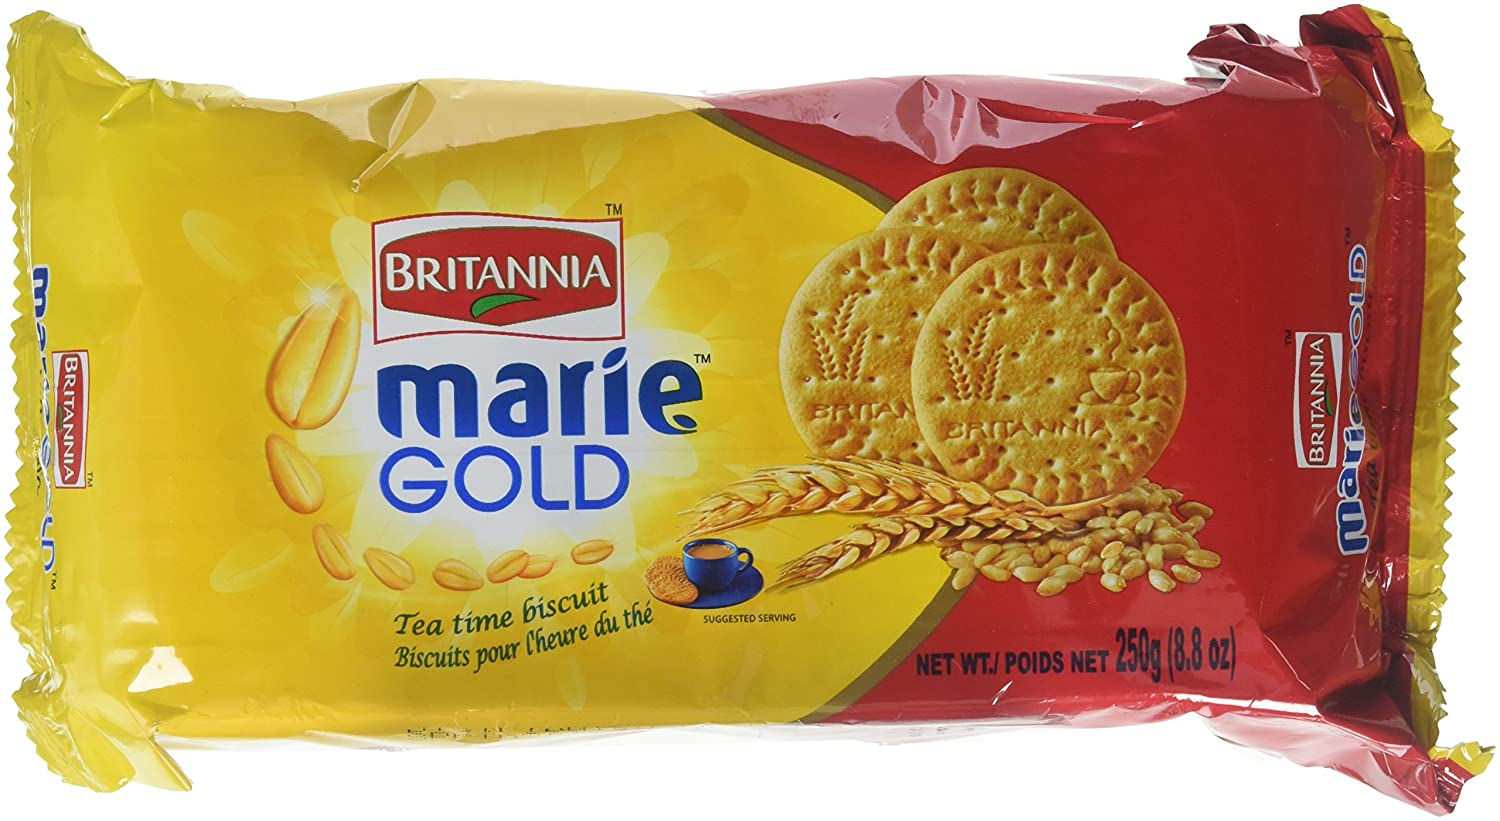 Britannia Marie Gold Tea Time Biscuits - 250g., 8.8oz. (Pack of 4)